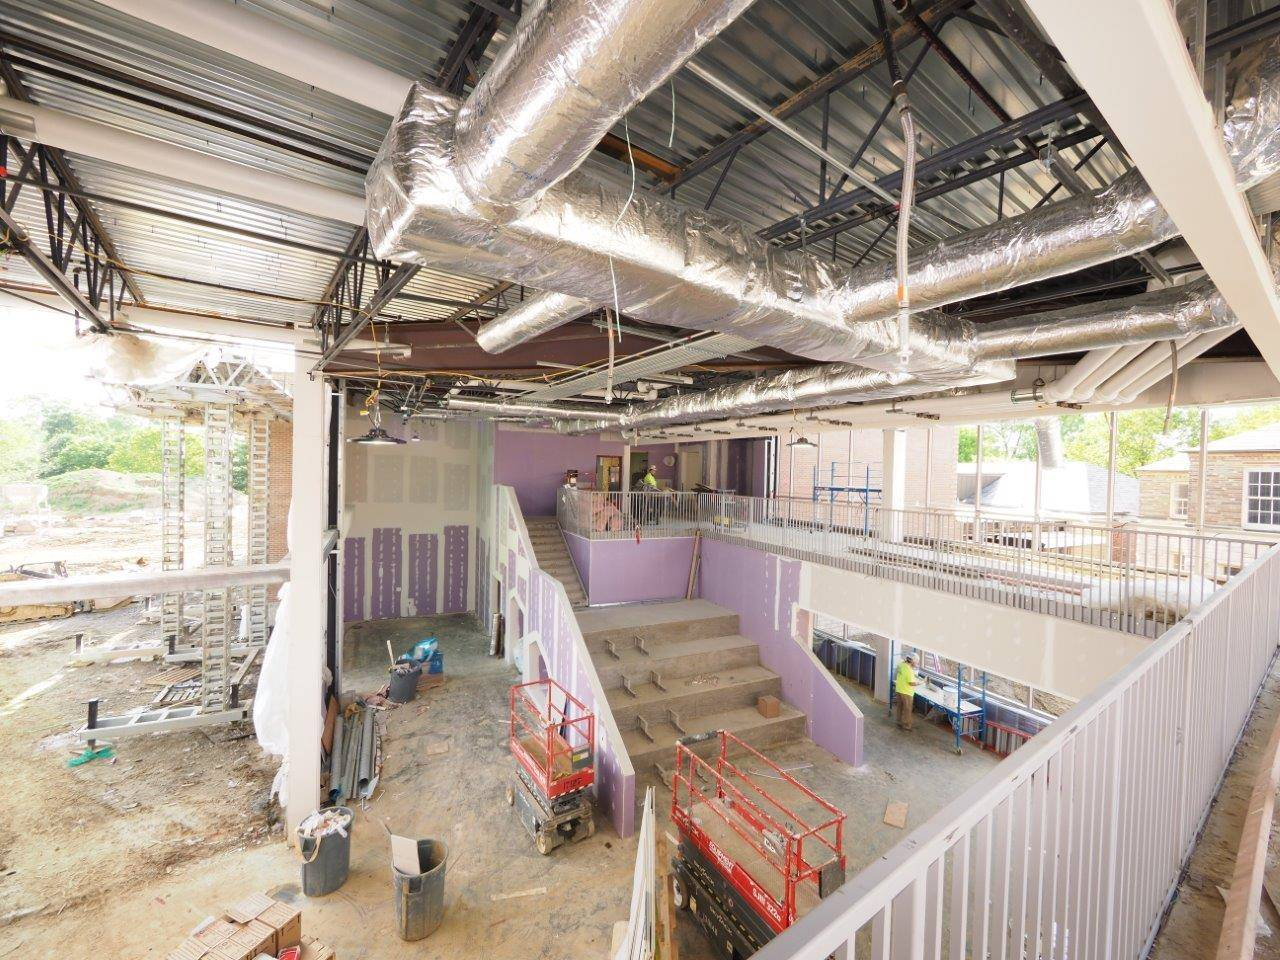 A view of the media center space inside the Barrington Elementary School addition project